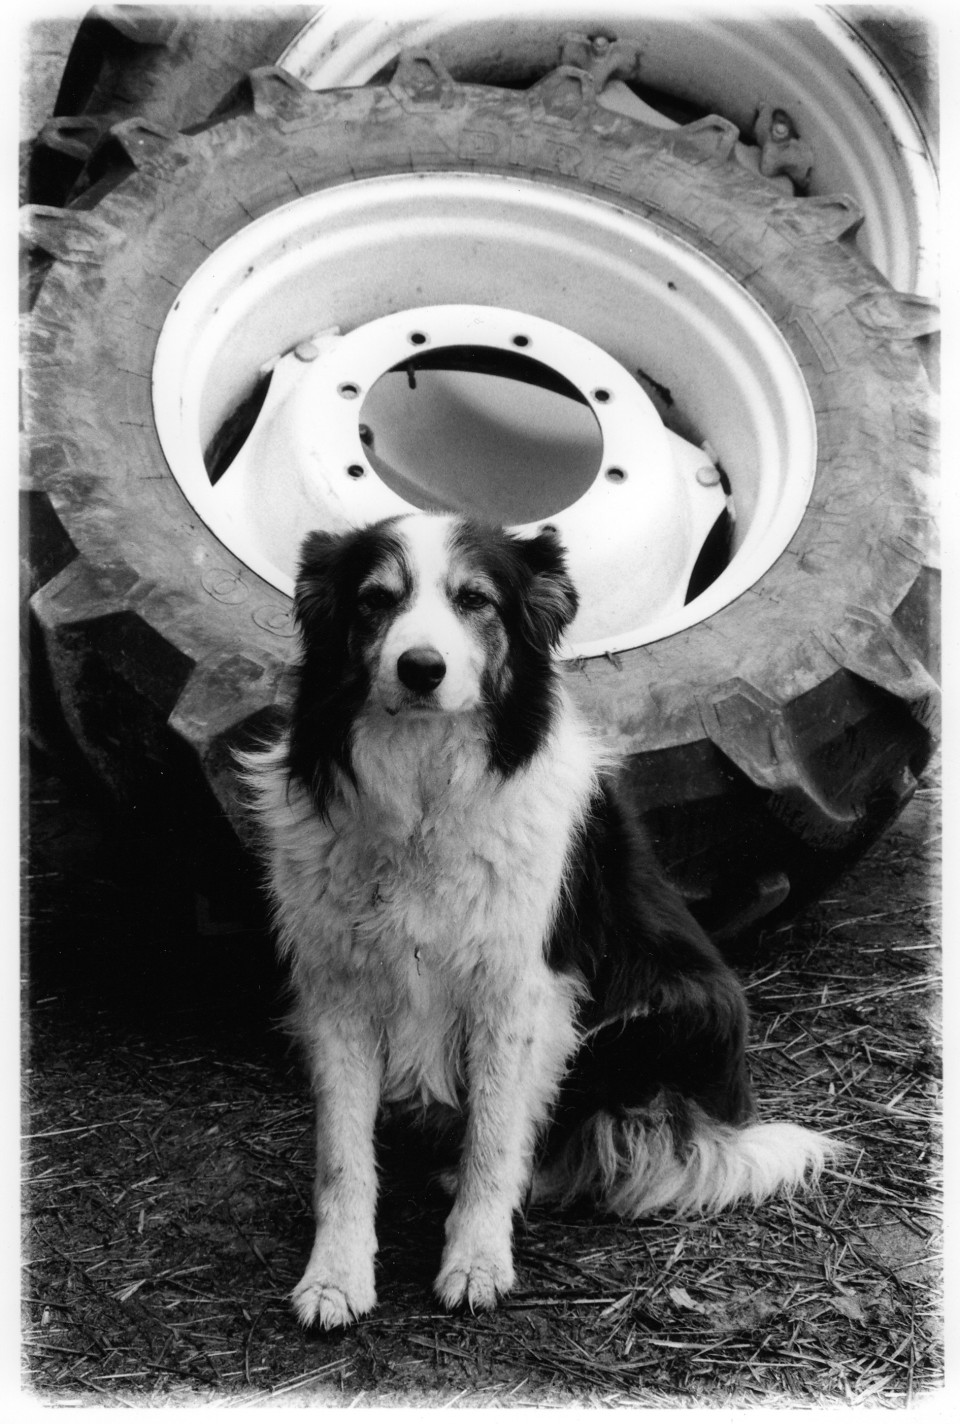 The Anderson's Collie